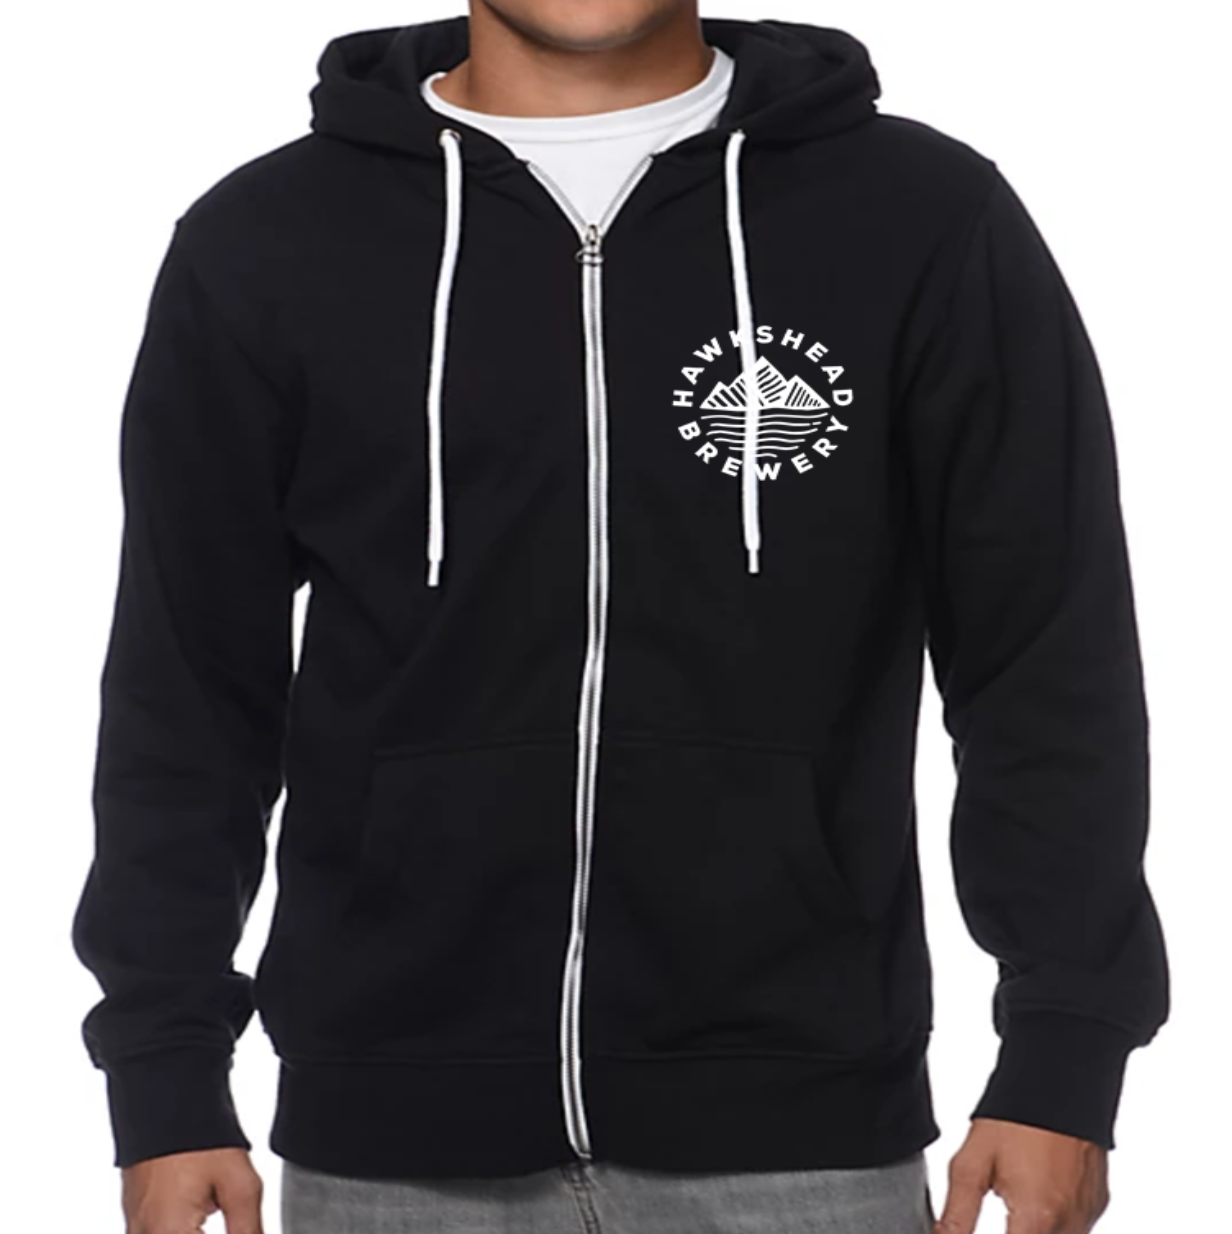 Hawkshead Brewery - Zip up Black Hoodie - White Logo